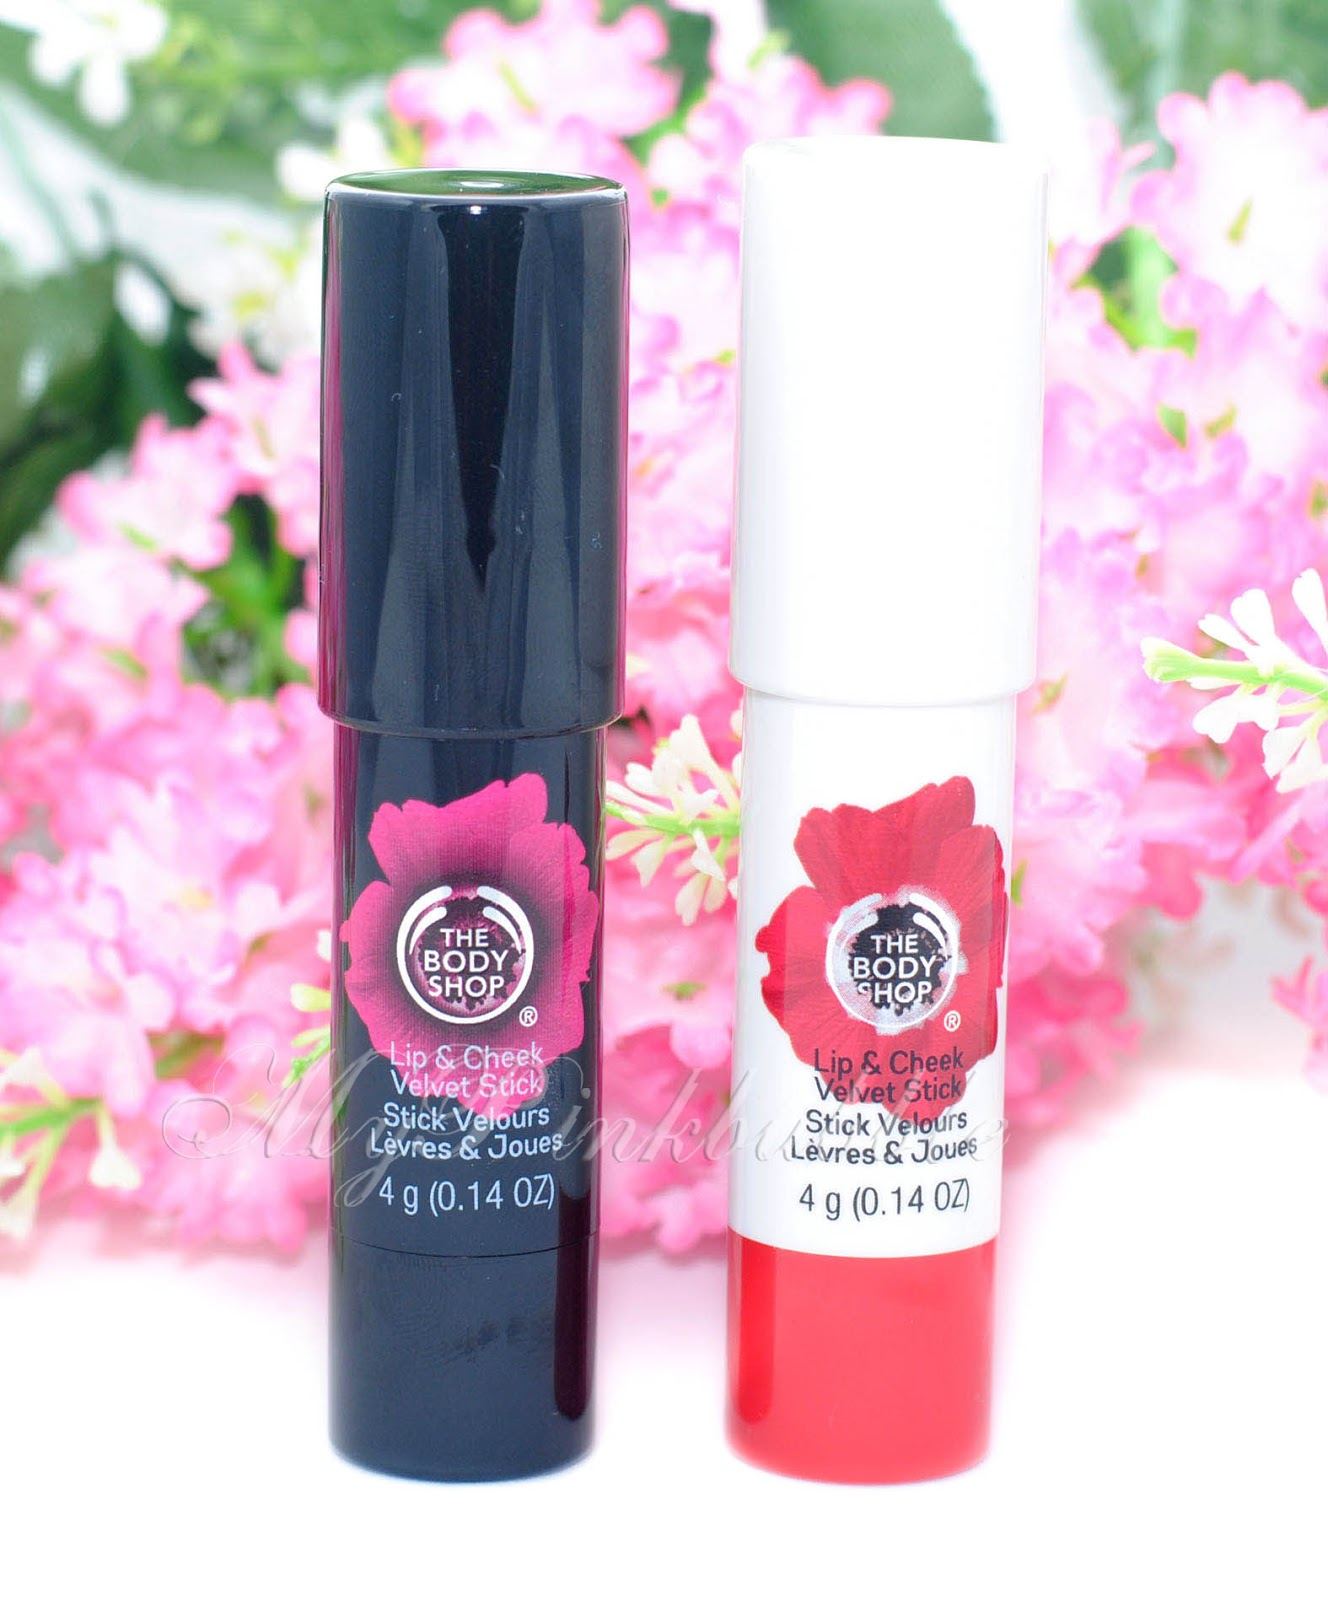 Body shop stick velvet colour para mejillas y labios